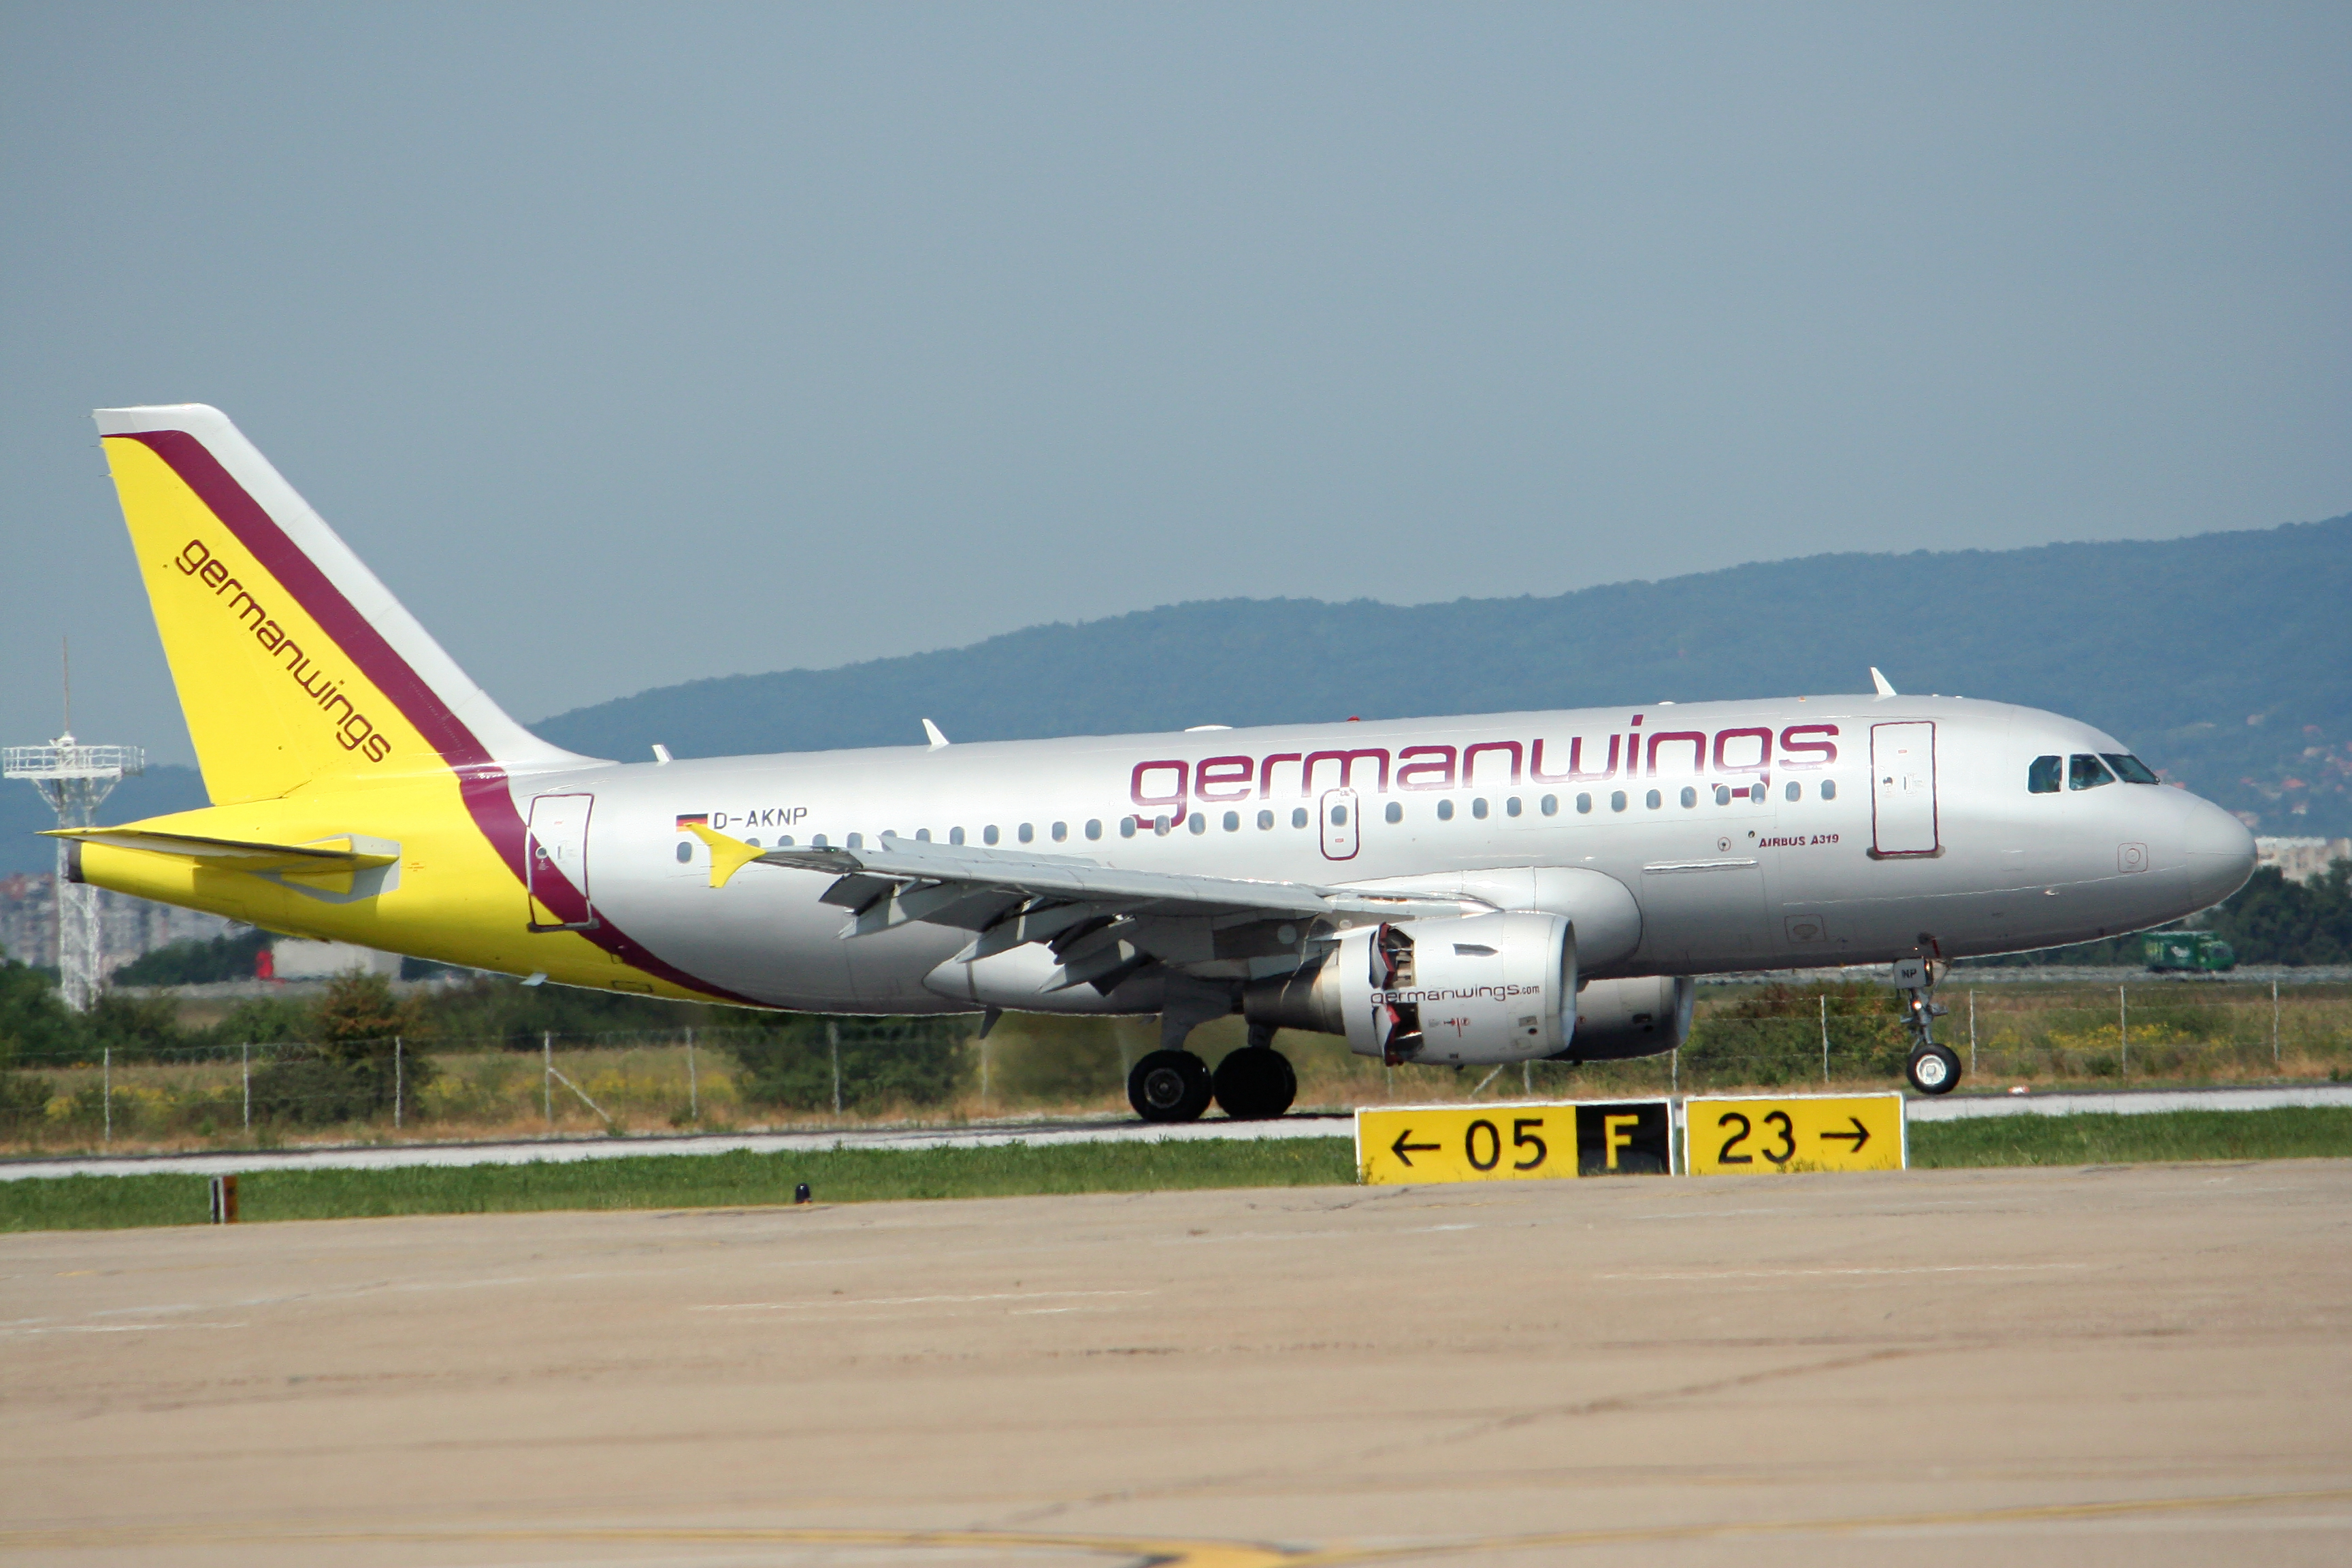 File:Germanwings A319.jpg - Wikimedia Commons